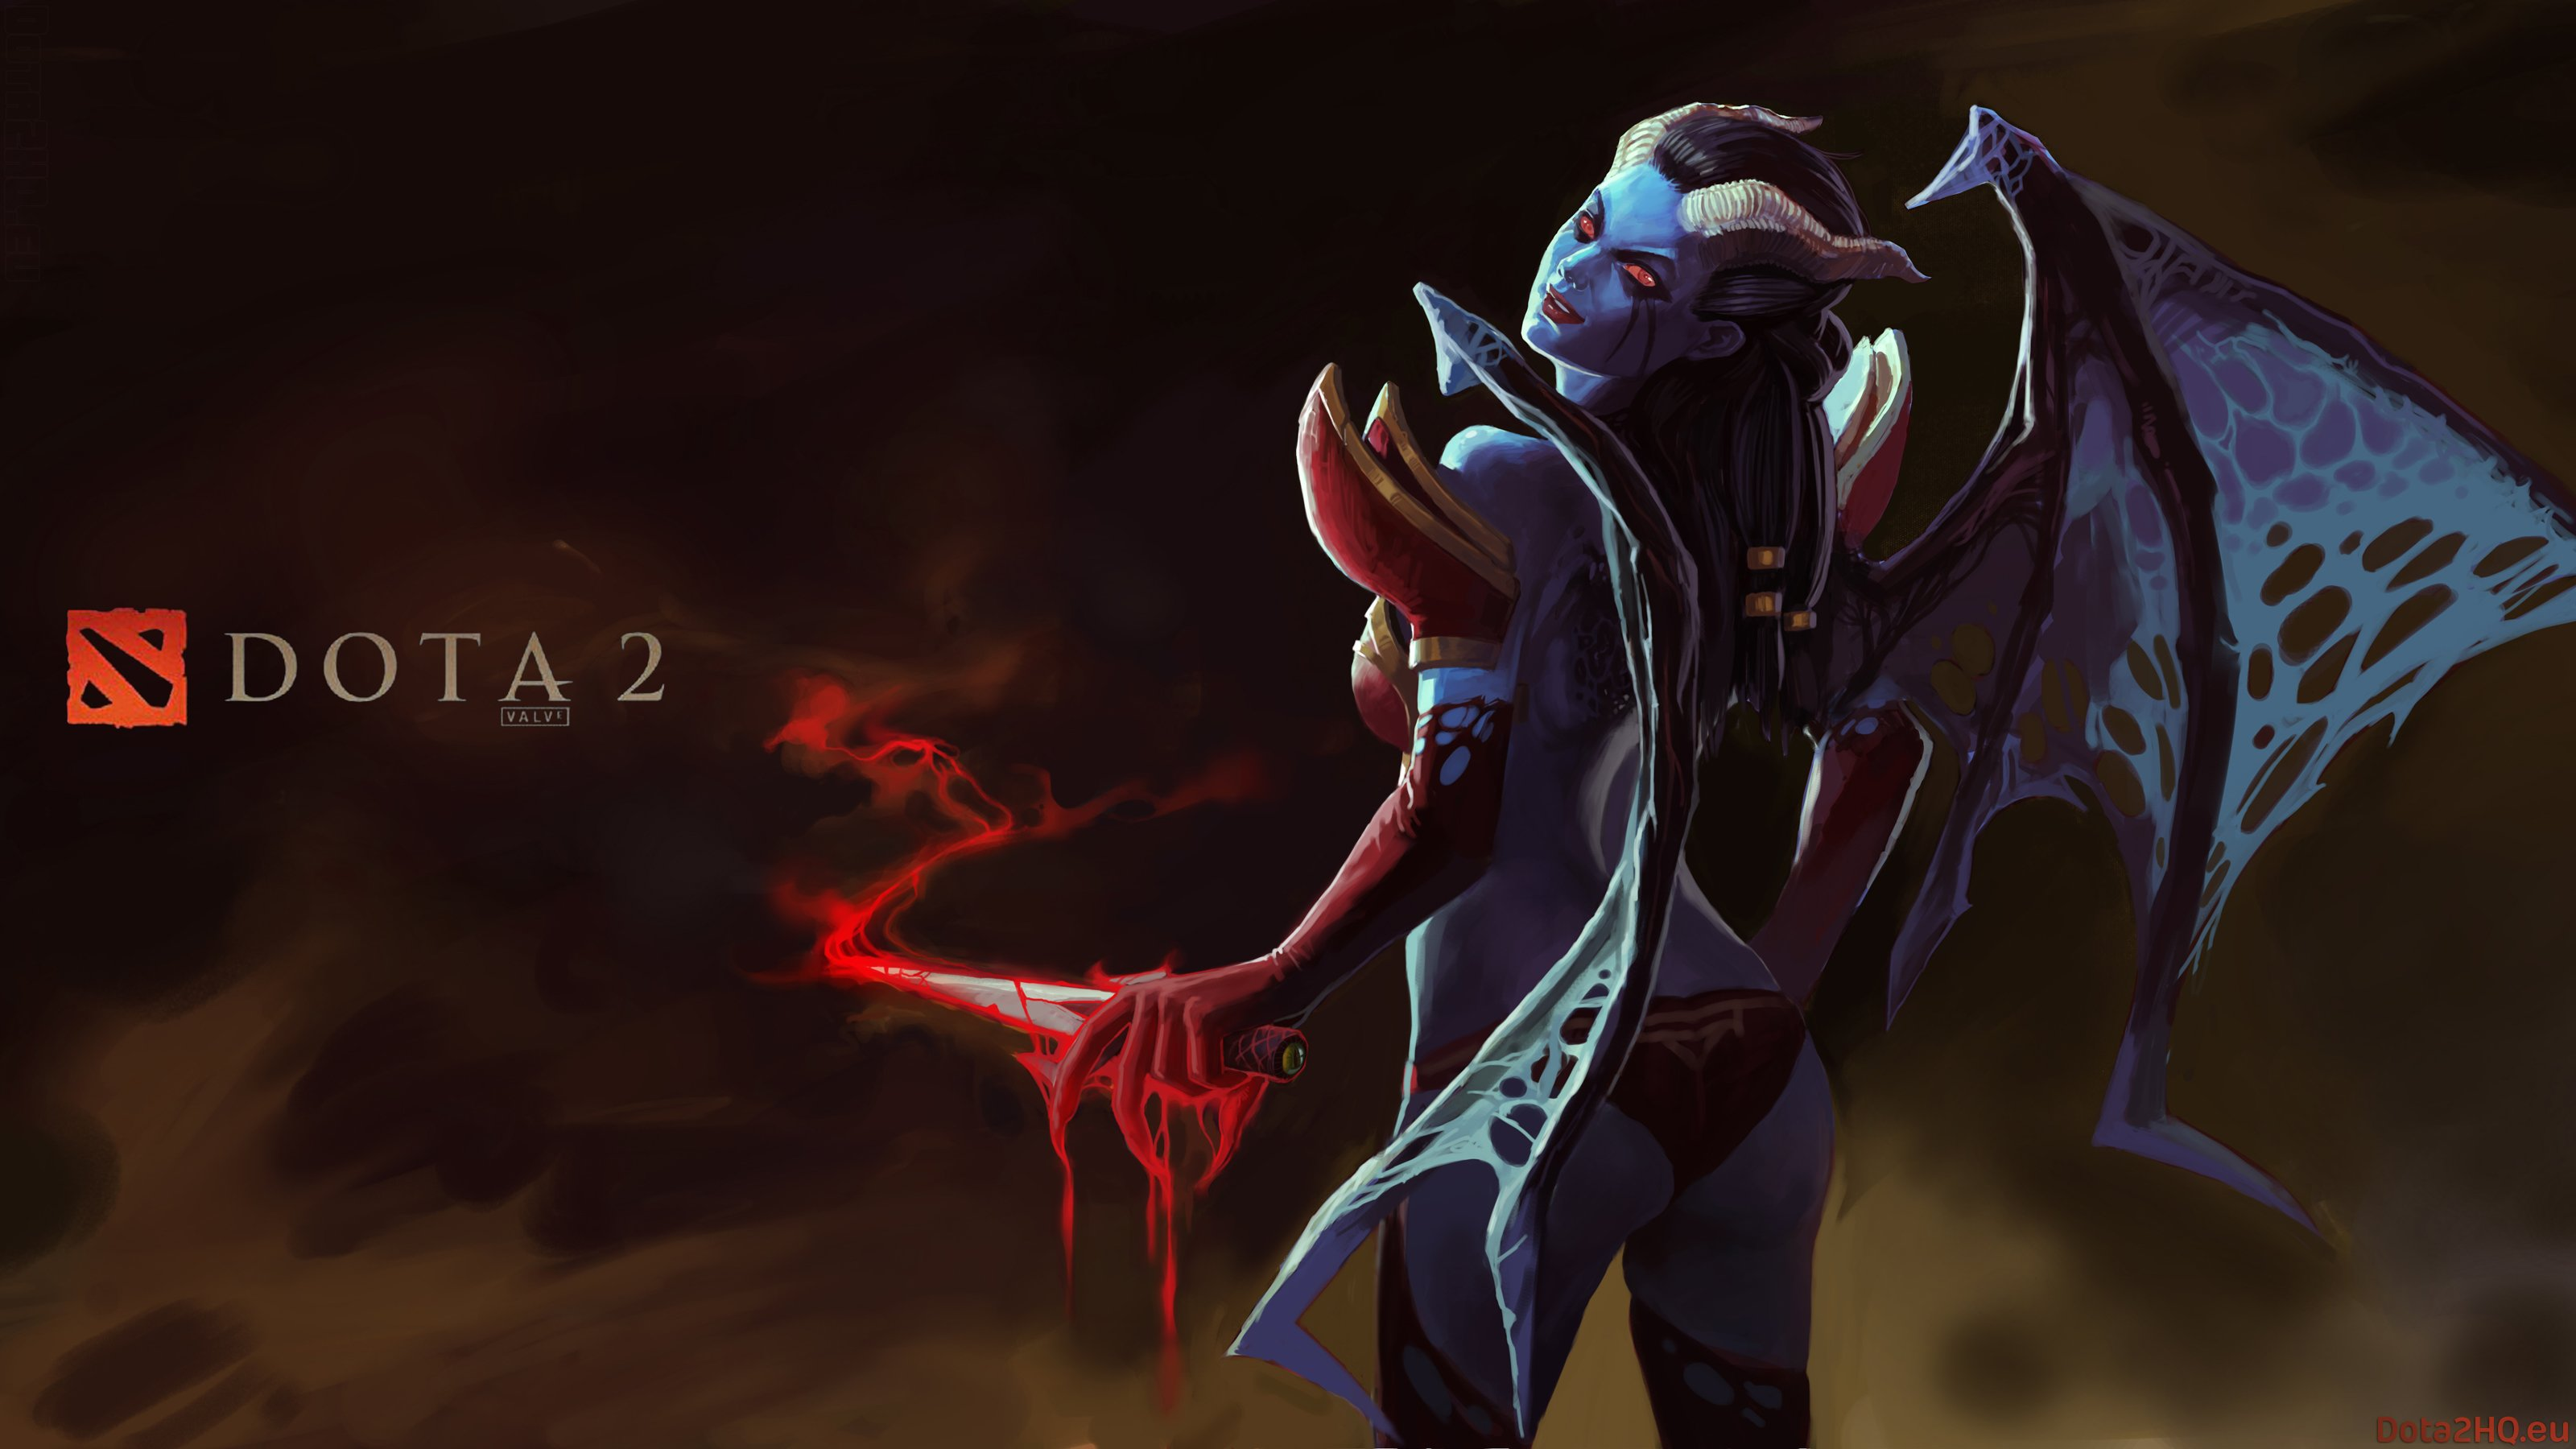 Akasha the Queen of Pain HQ Wallpaper   DOTA 2 Wallpapers 3200x1800